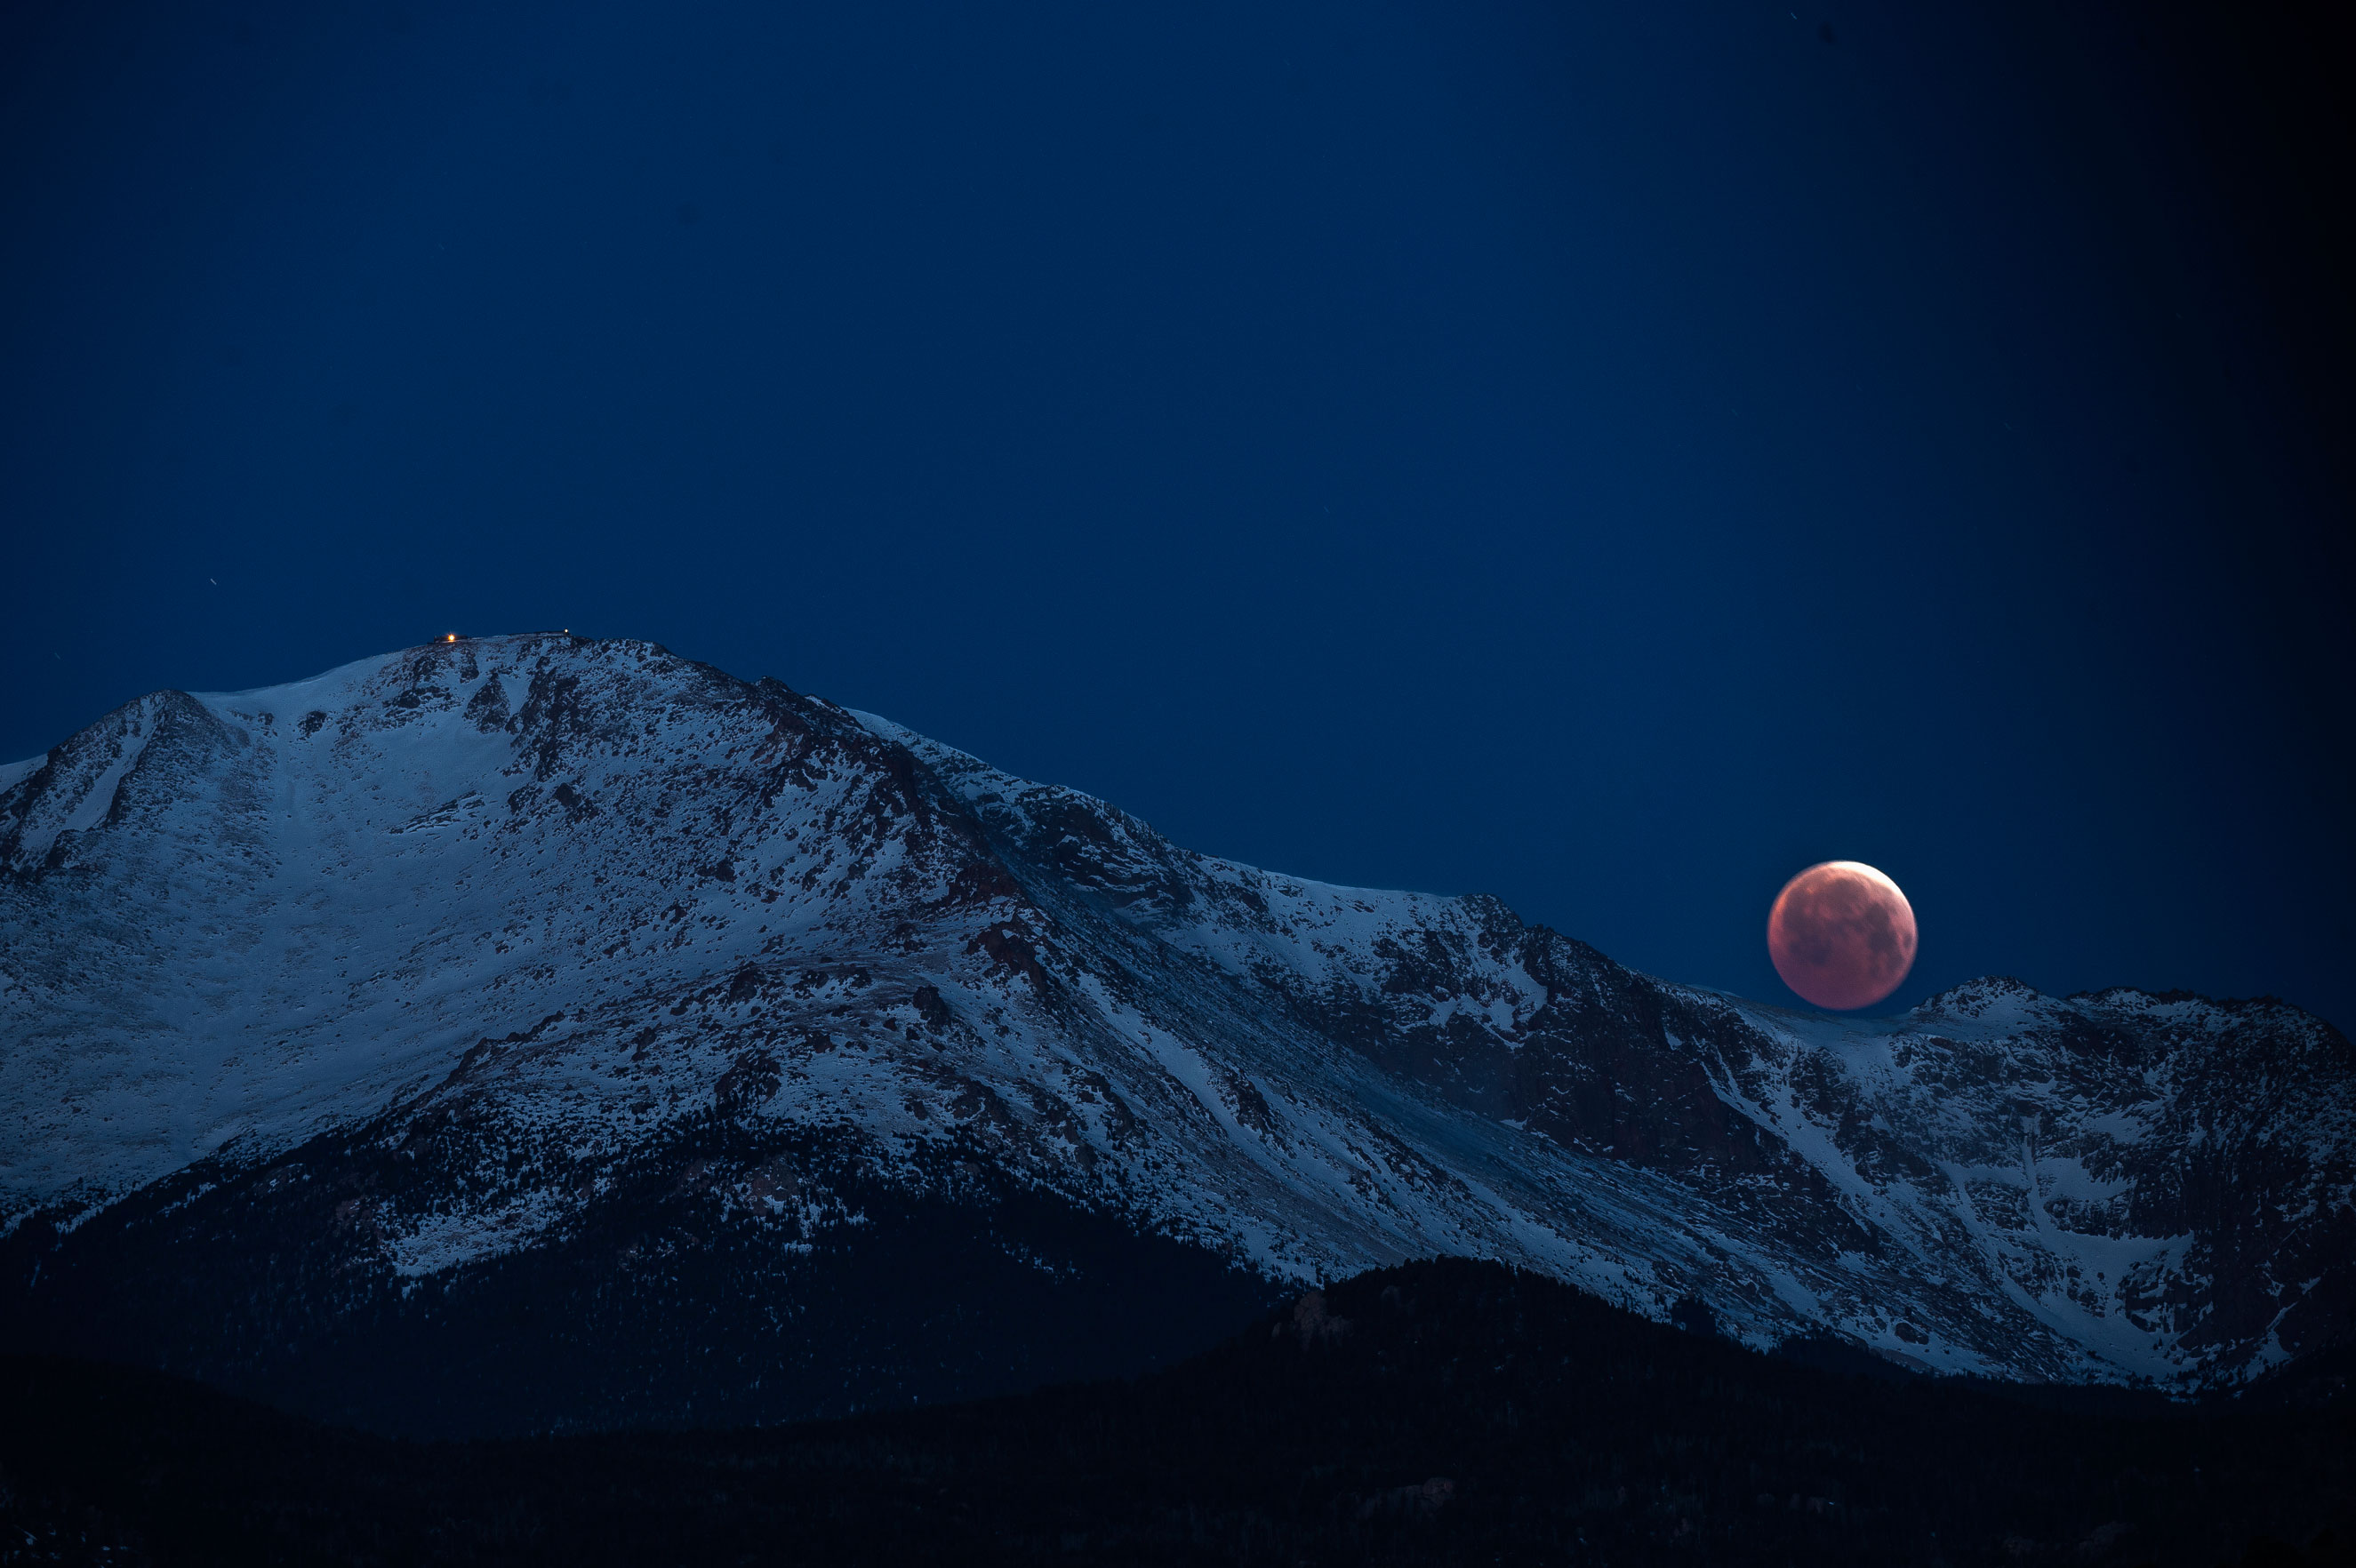 The blood moon lunar eclipse sets behind Pikes Peak on April 4, 2015 in Colorado Springs. The reddish hue is the result of Earth moving between the sun and the moon and Earth's atmosphere absorbing blue wavelengths and allowing red ones to pass through.